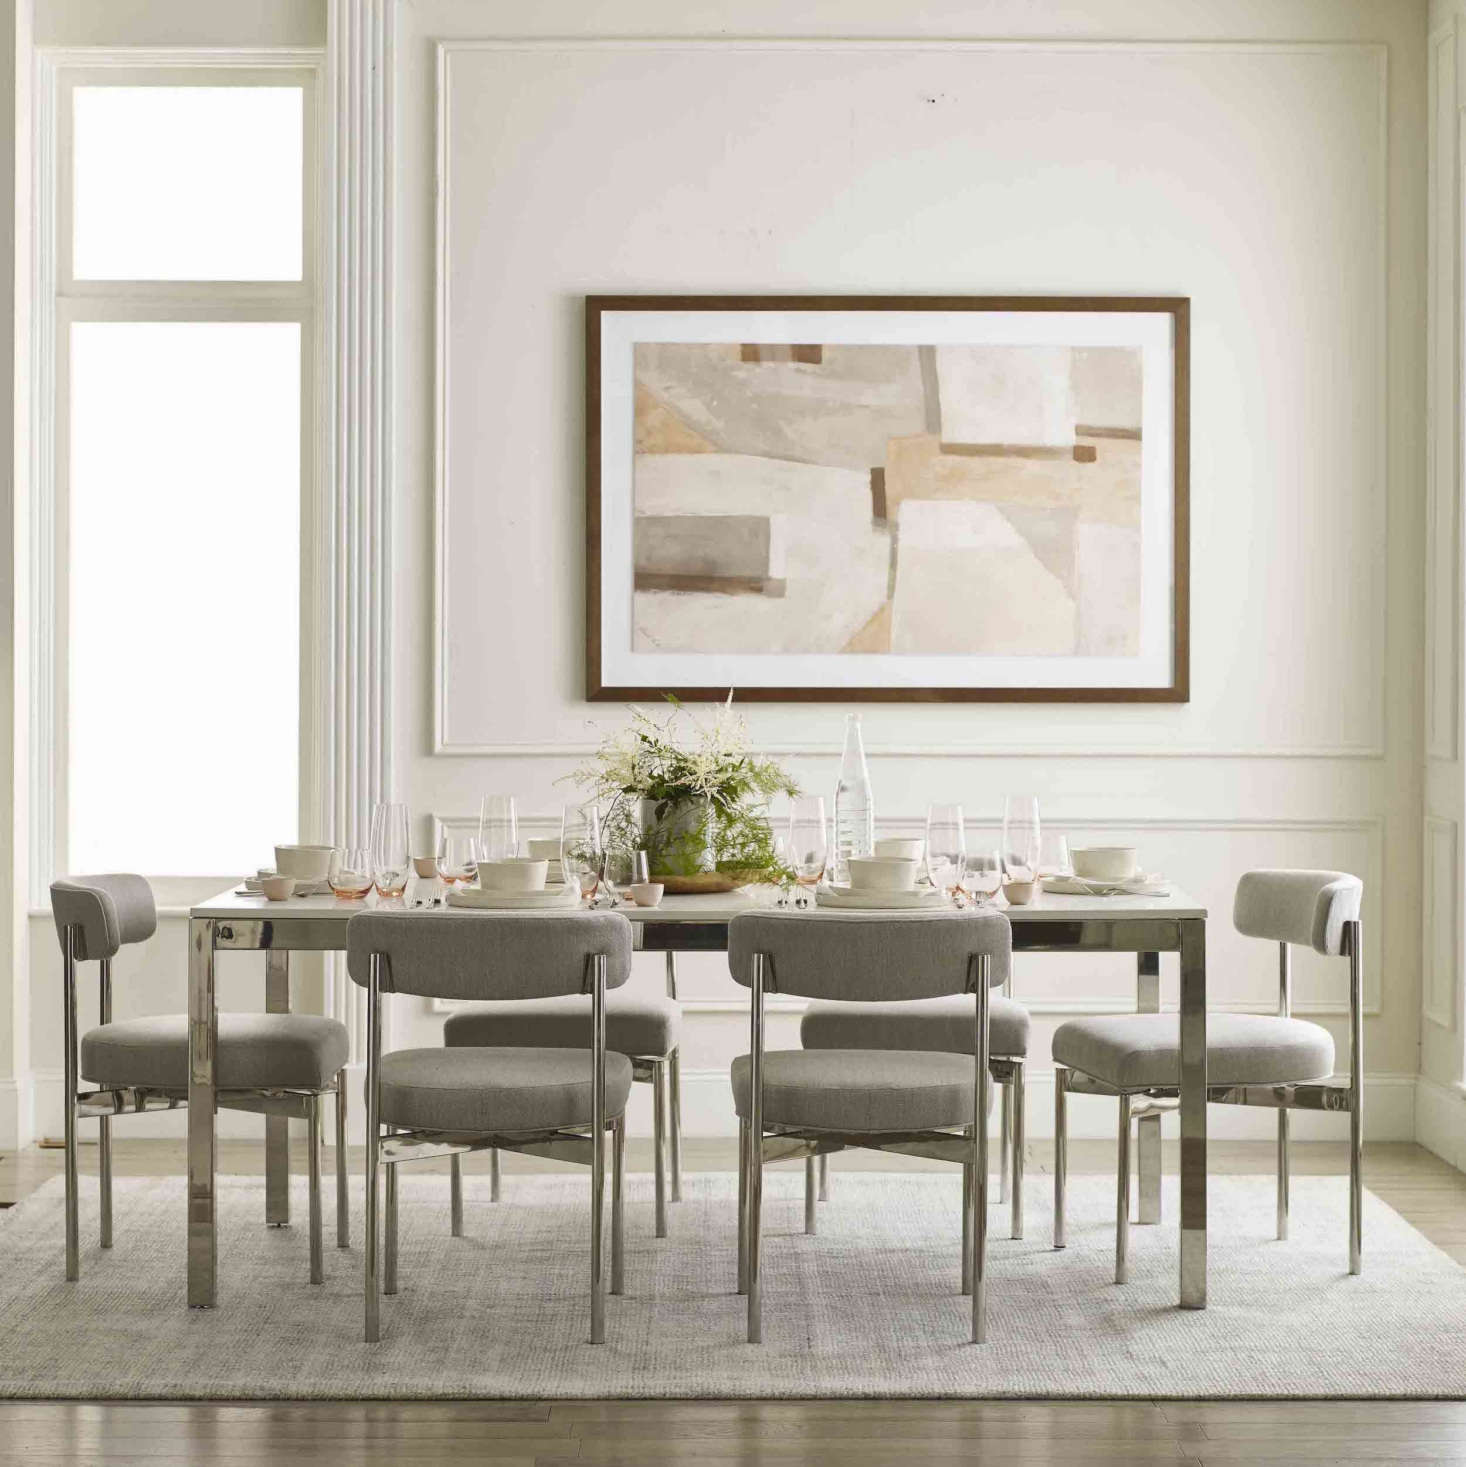 An example of the collection's multifunctional, completely customizable offerings: The Essential Parsons Dining Table is available in three sizes (60-inch, 76-inch, or 96-inch rectangle), four metal finishes (brushed brass, brushed stainless, pewter, and polished stainless, shown), and three tops (white quartz with or without veining and gray quartz) to suit any style and need. Choose the small version for a dining table that's also easily used as a desk or a larger design for at-home family dinners. It's shown with the Remy Dining Chair, available in matching finishes.